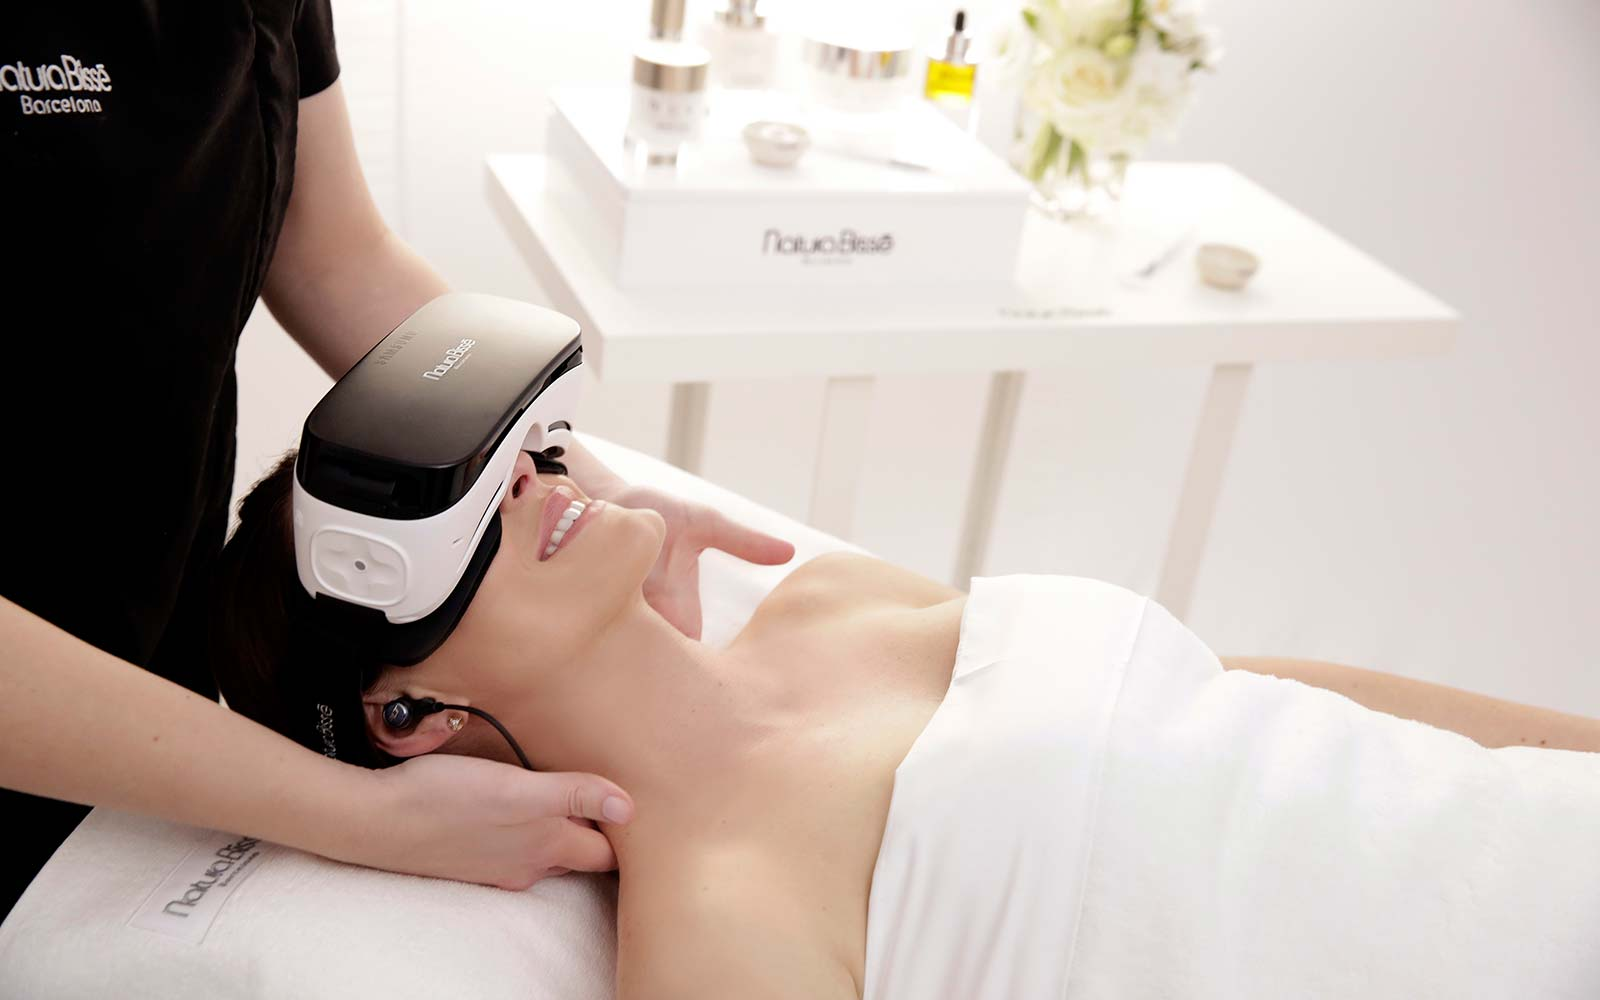 Presenting the Virtual Reality Facial